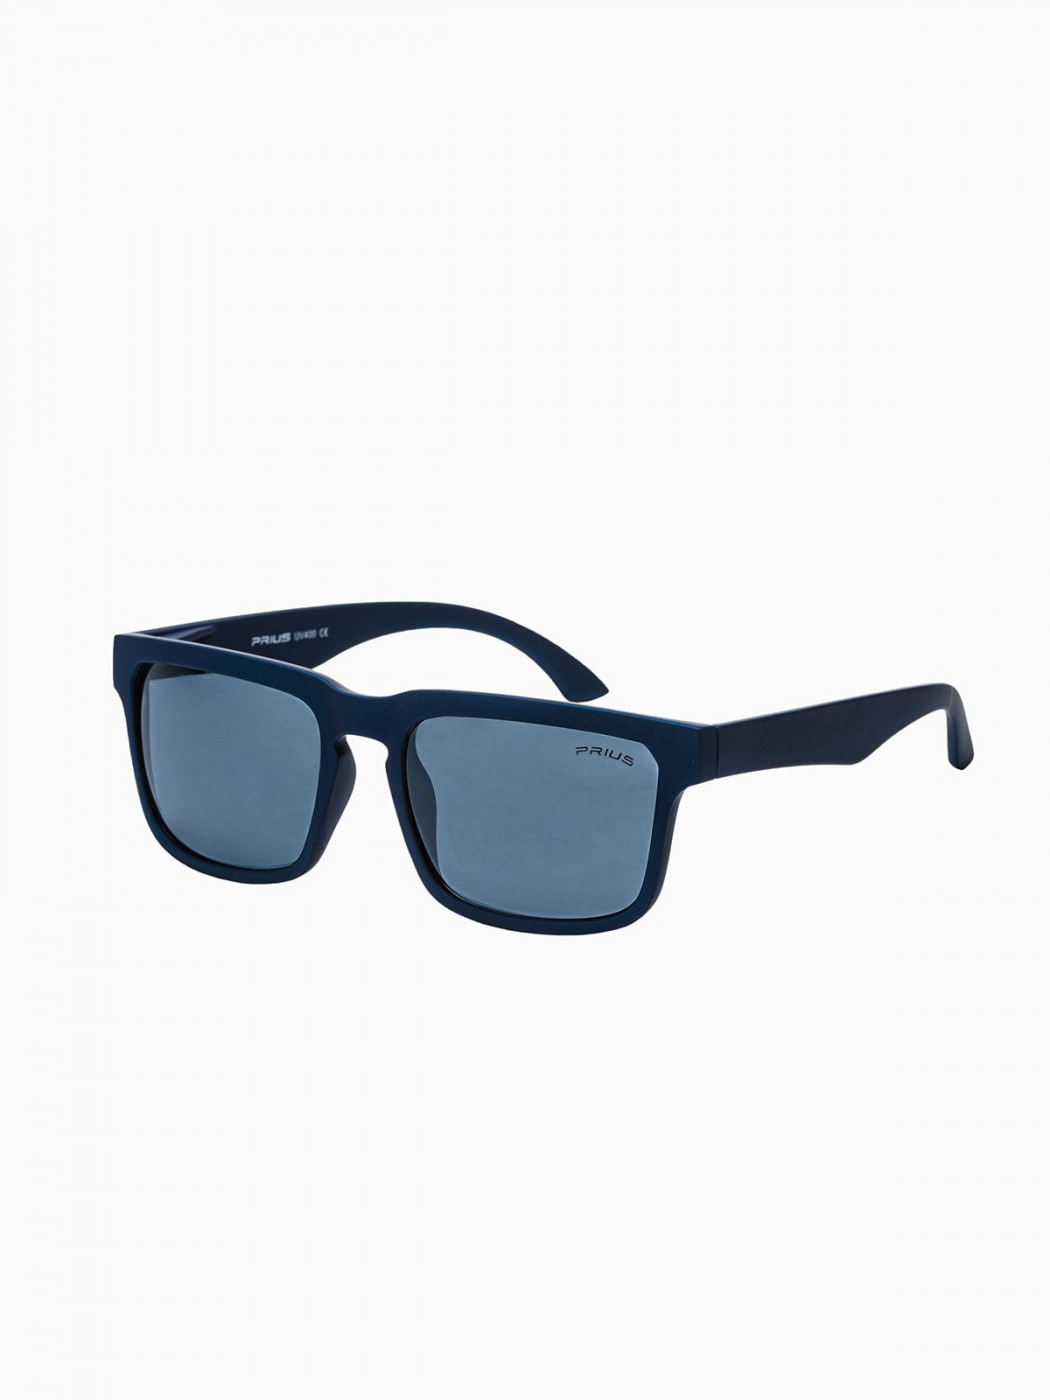 Ombre Clothing Sunglasses A285